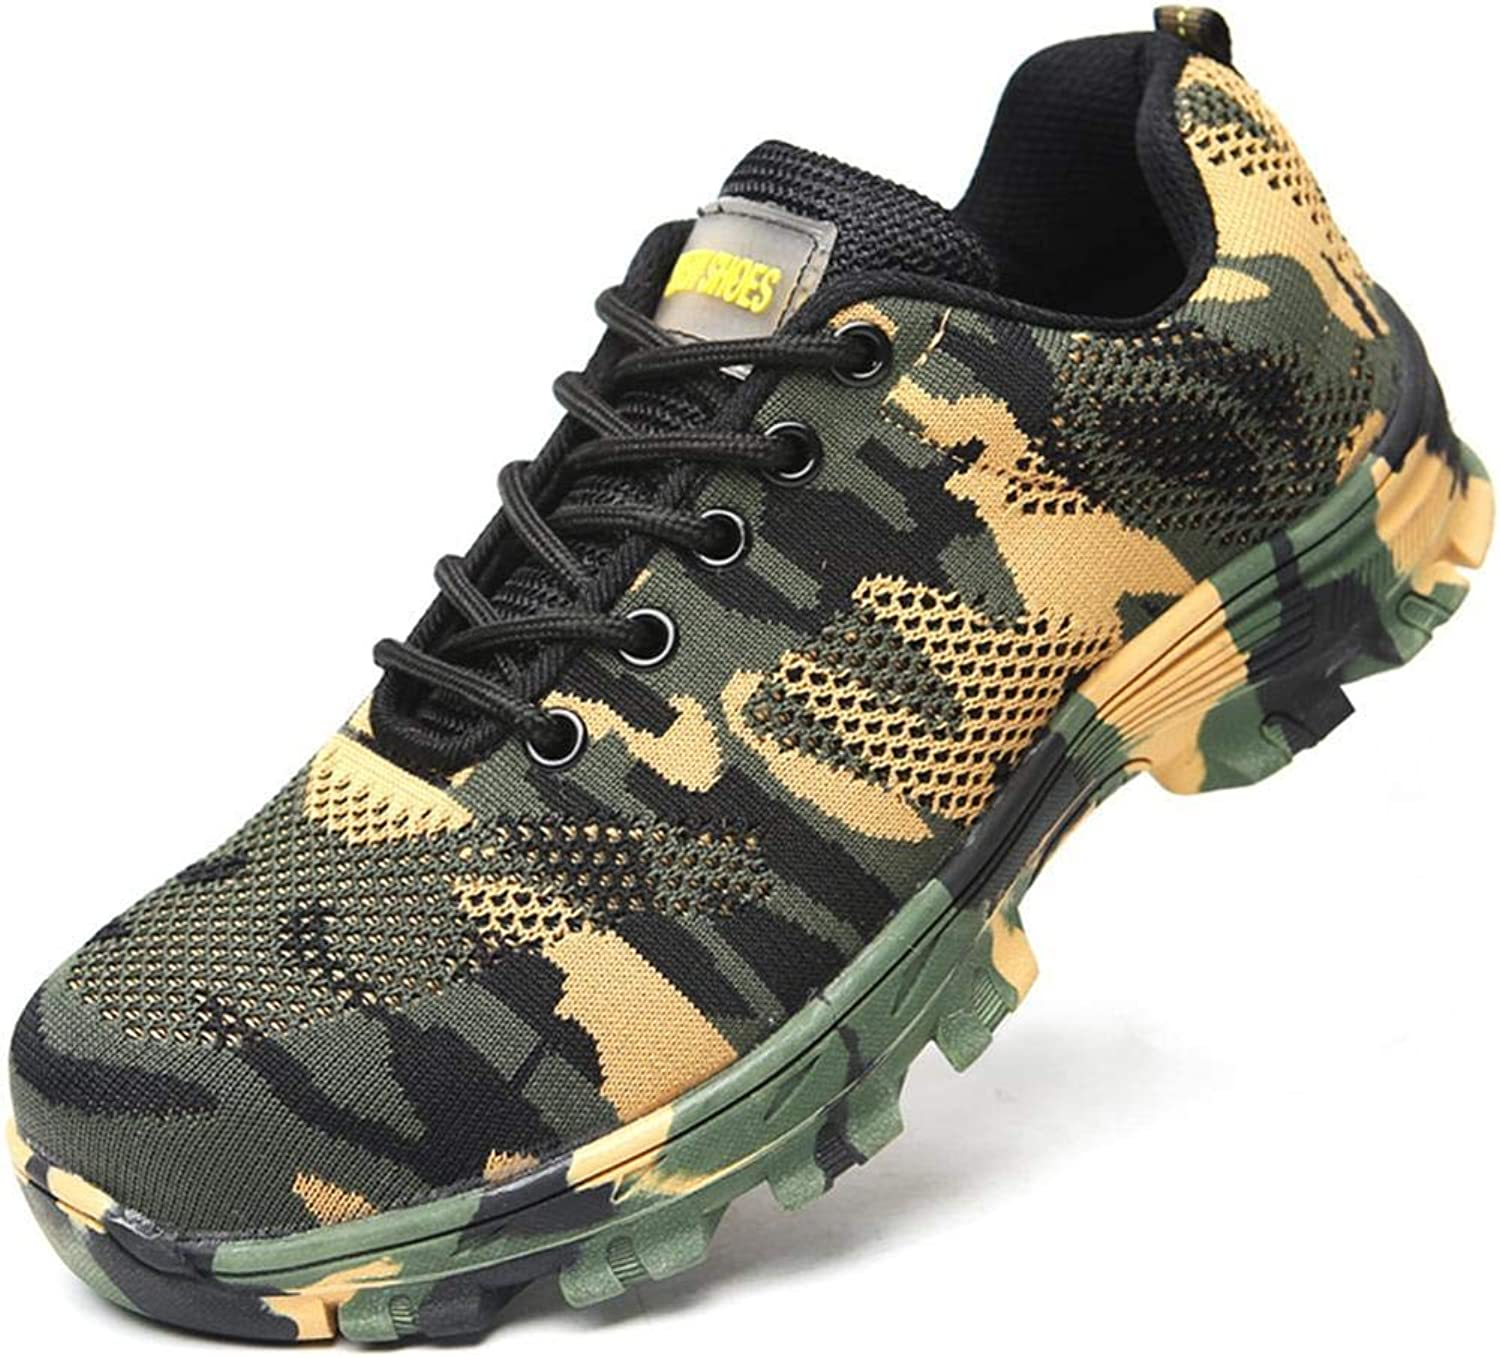 Nimhes Camouflage Woven Spring Mesh Steel Toe Cap Puncture Proof Work Safe Boots Lace-ups